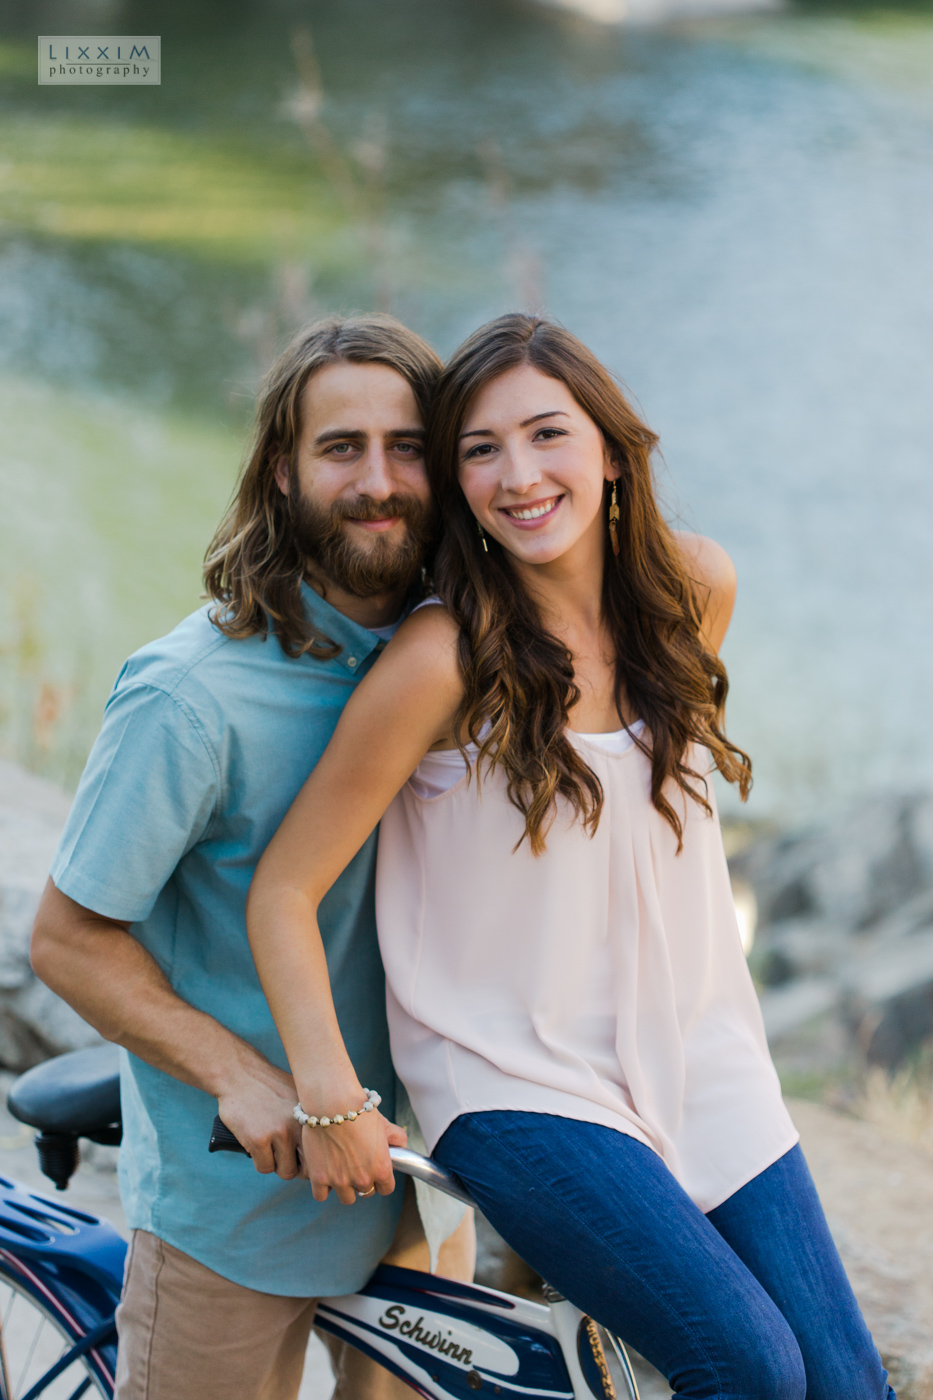 folsom-california-engagement-session-photography-6.jpg